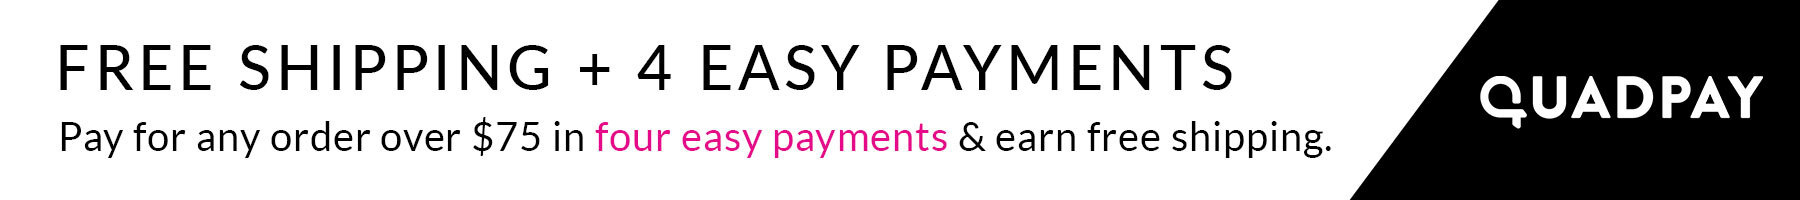 Free shipping + 4 easy payments with QuadPay on orders over $75